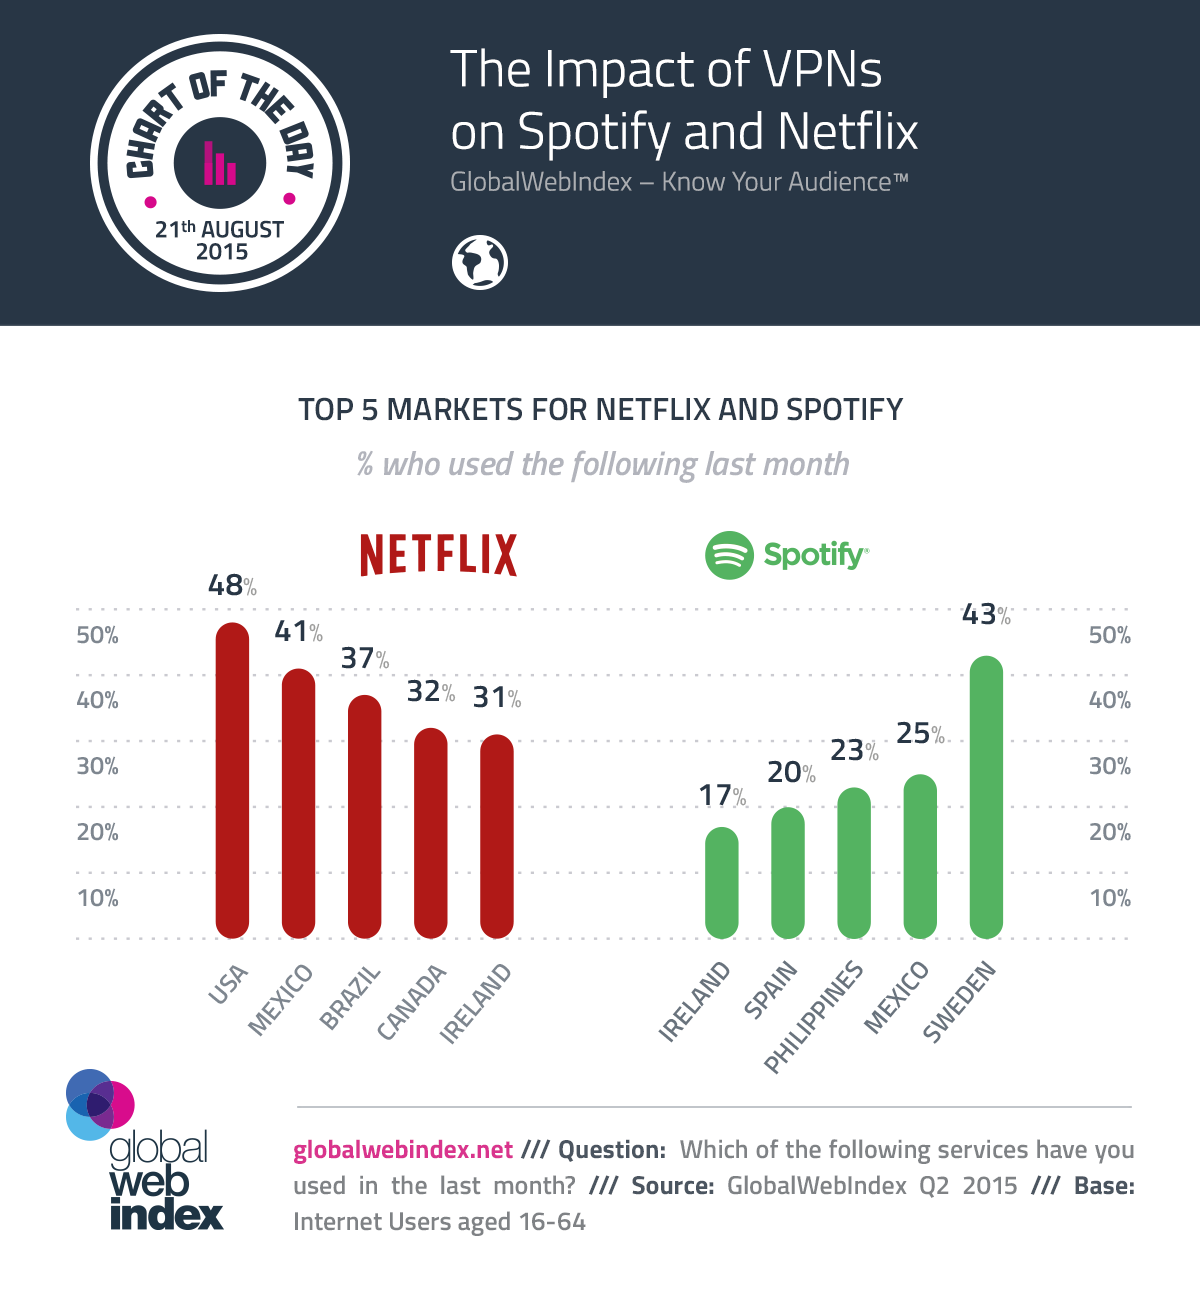 21th-Aug-2015-The-Impact-of-VPNs-on-Spotify-and-Netflix